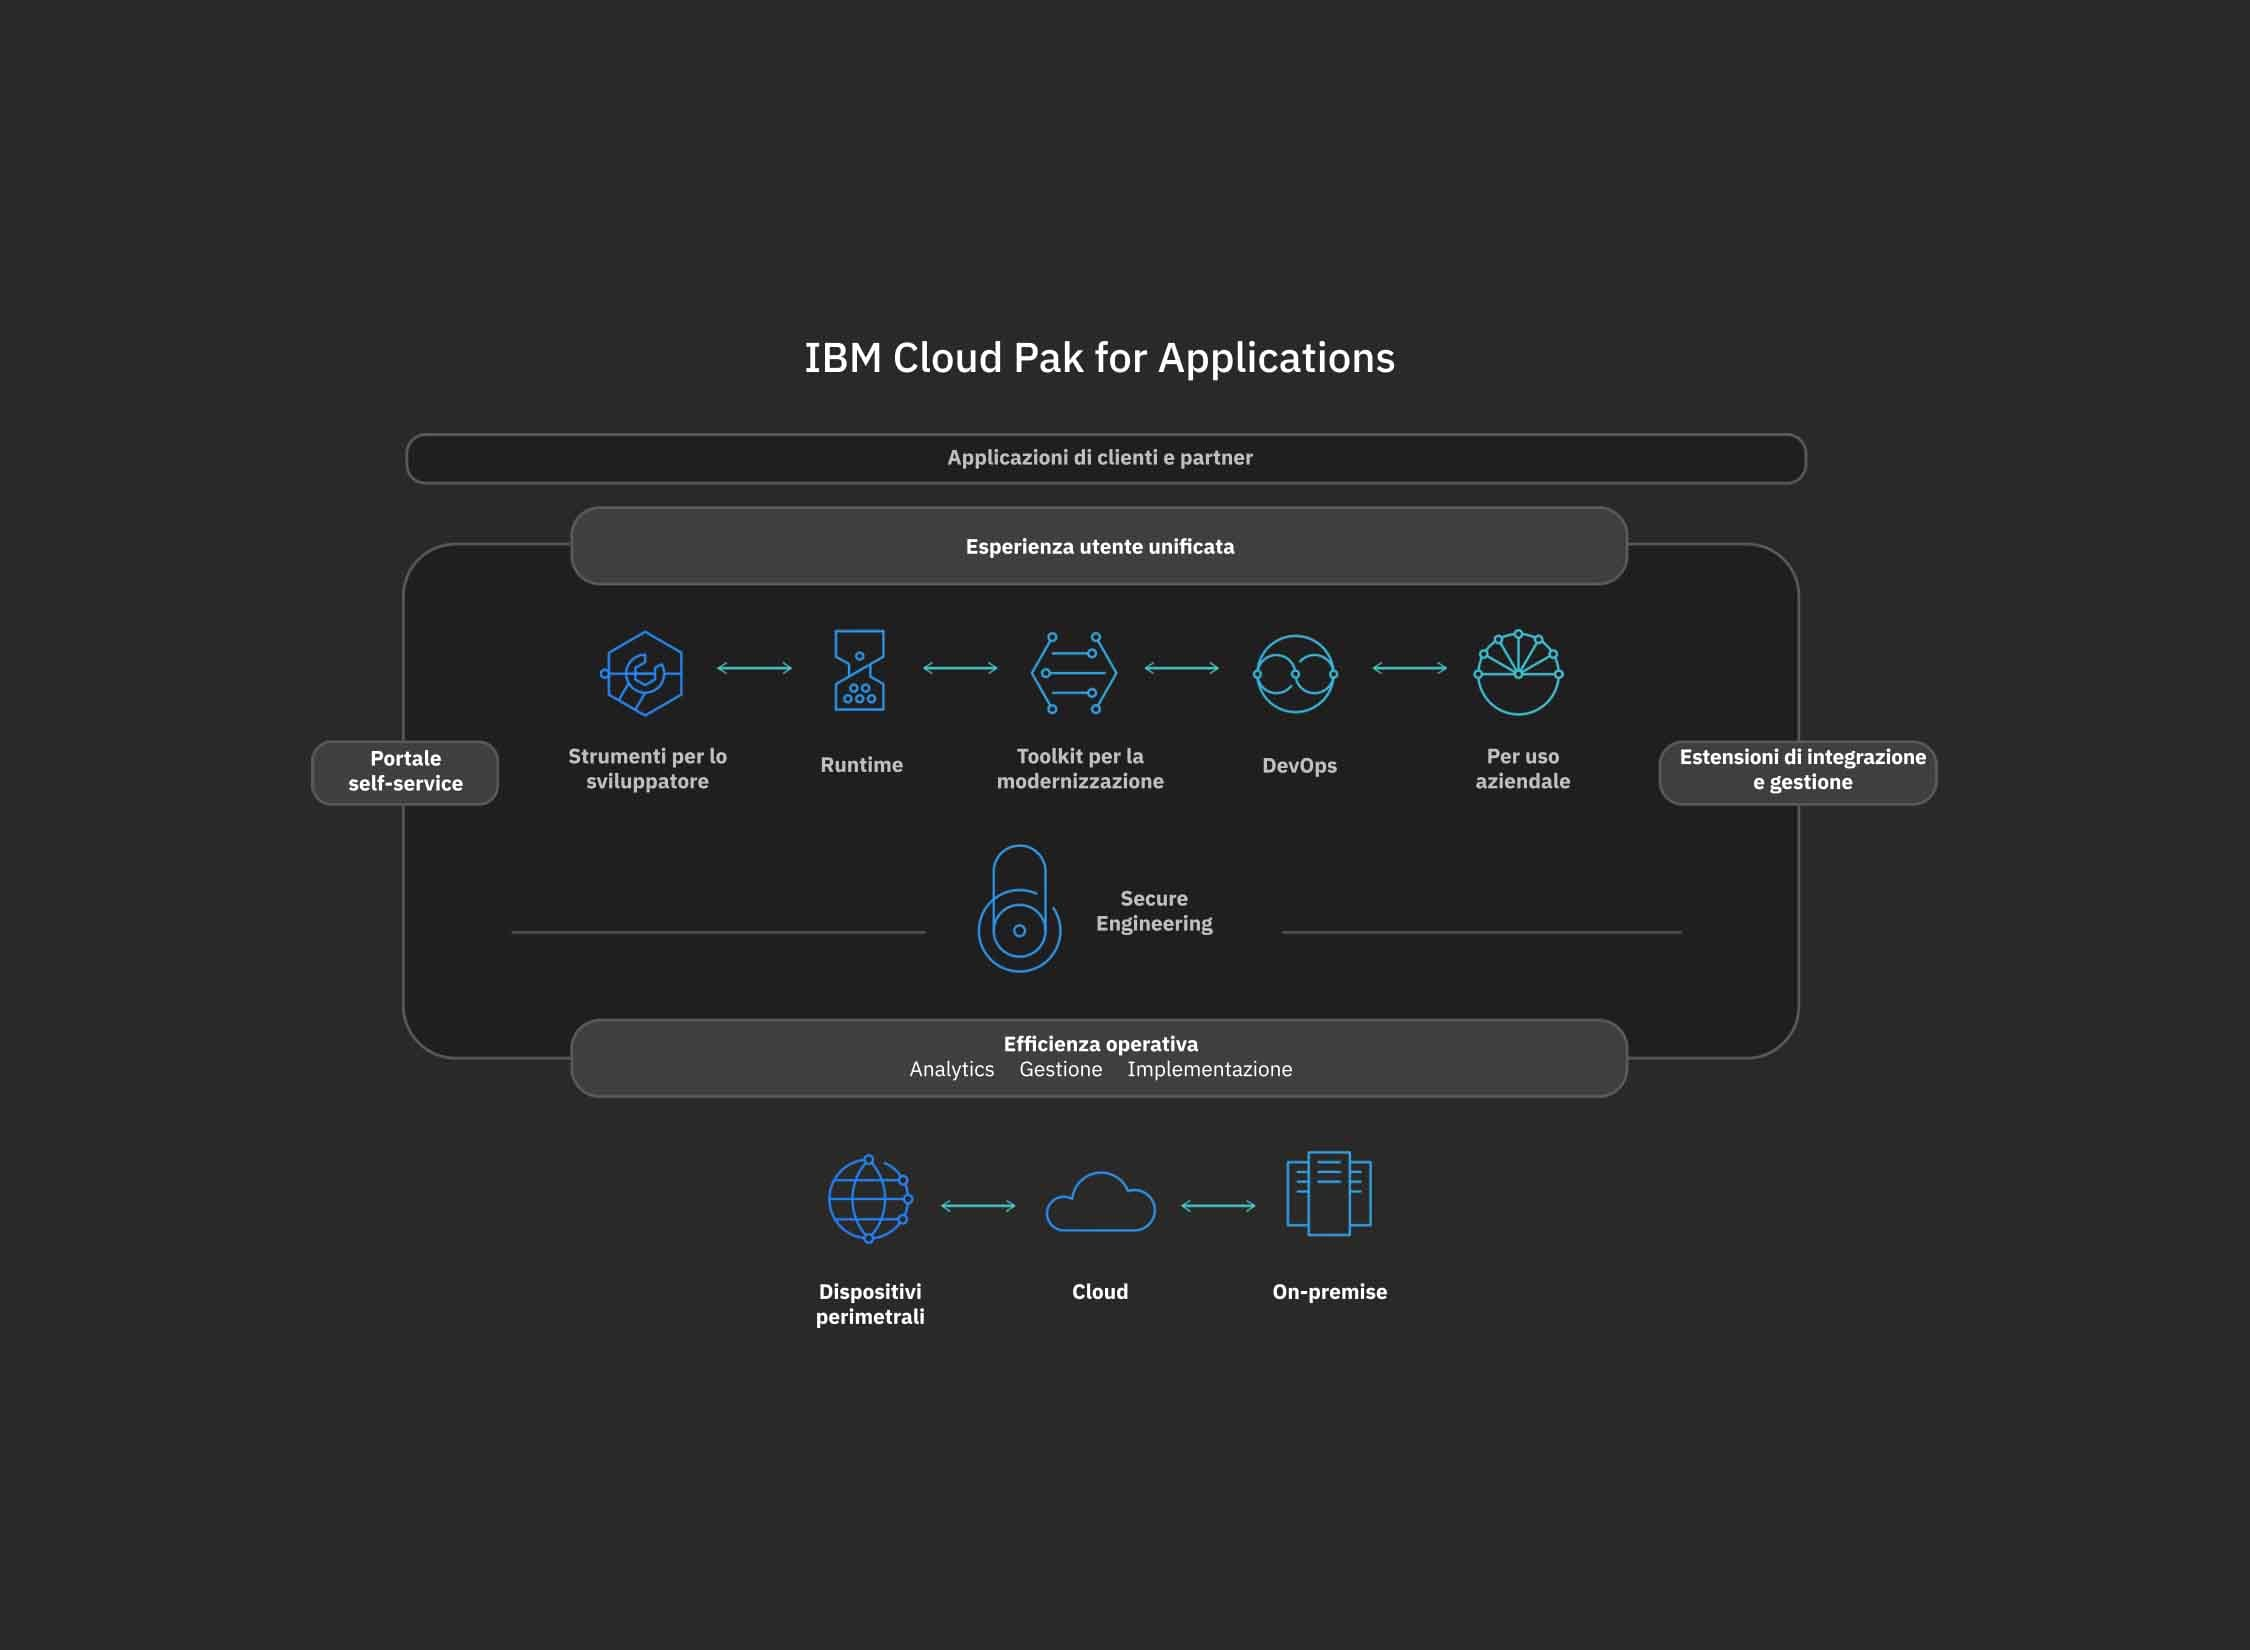 diagramma che mostra come IBM Cloud Pak for Applications gestisce i dati